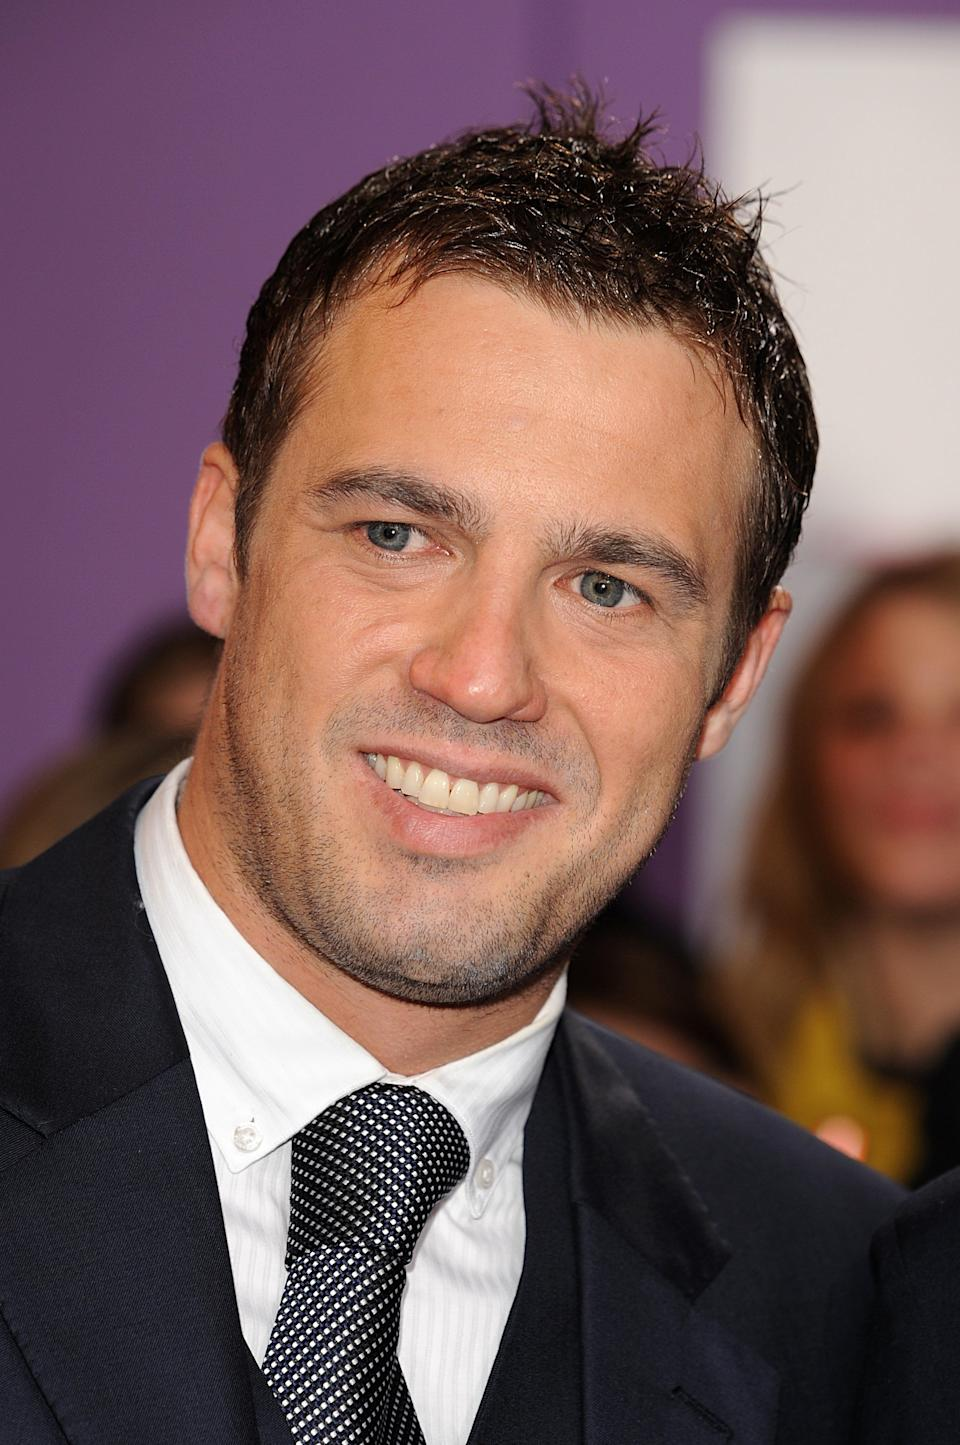 Serial switcher Jamie Lomas starred in 'Coronation Street' and 'Hollyoaks', before taking his latest role as Jake Stone in 'EastEnders'.